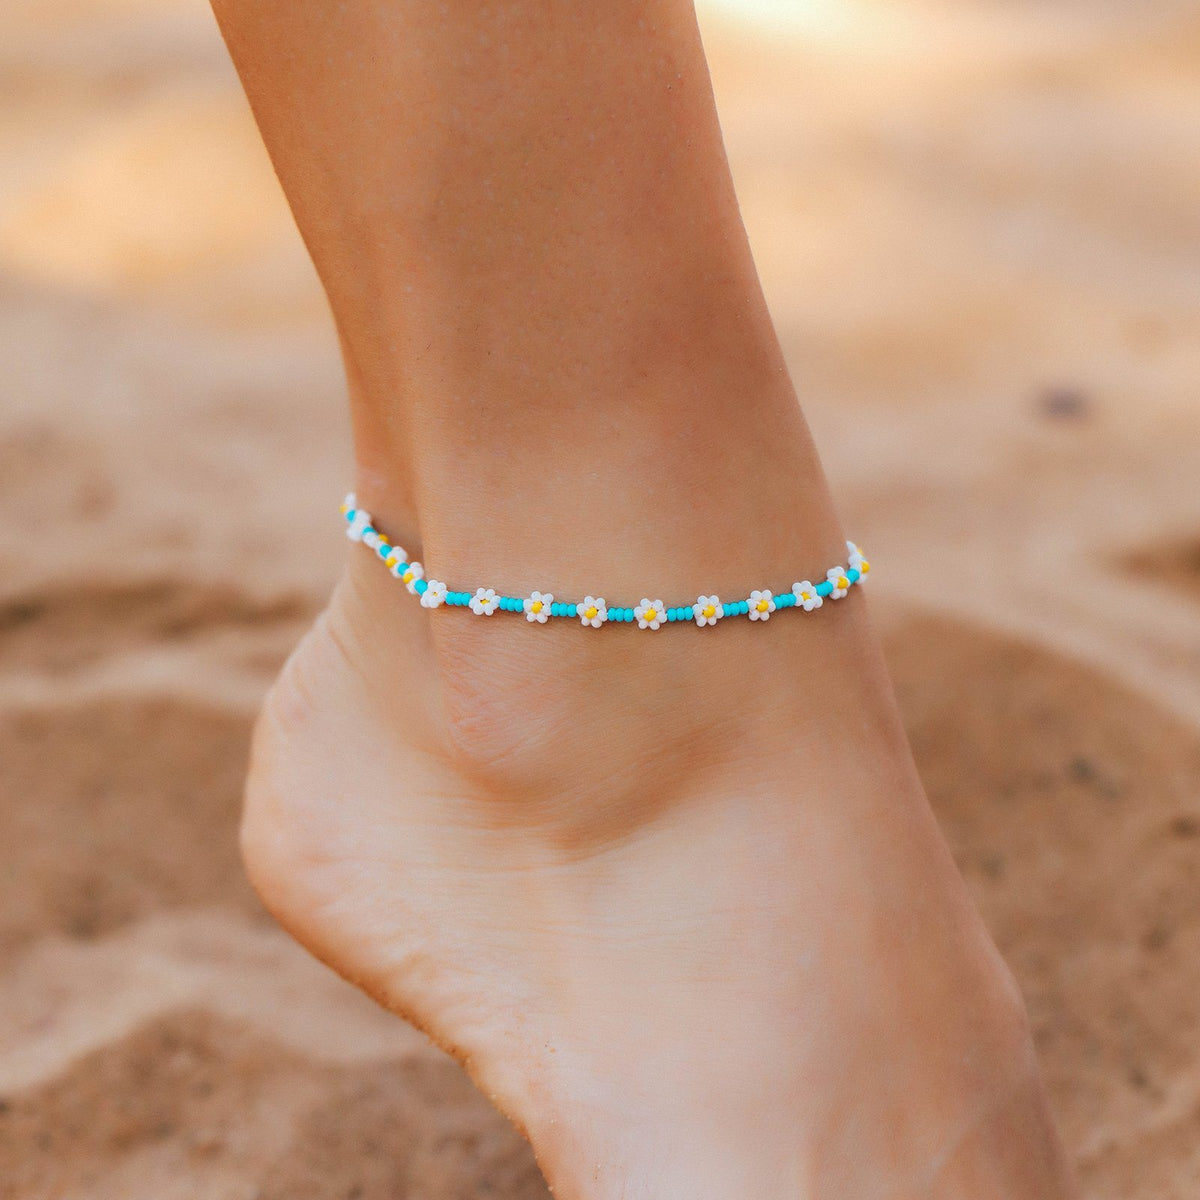 Daisy Seed Bead Anklet 2